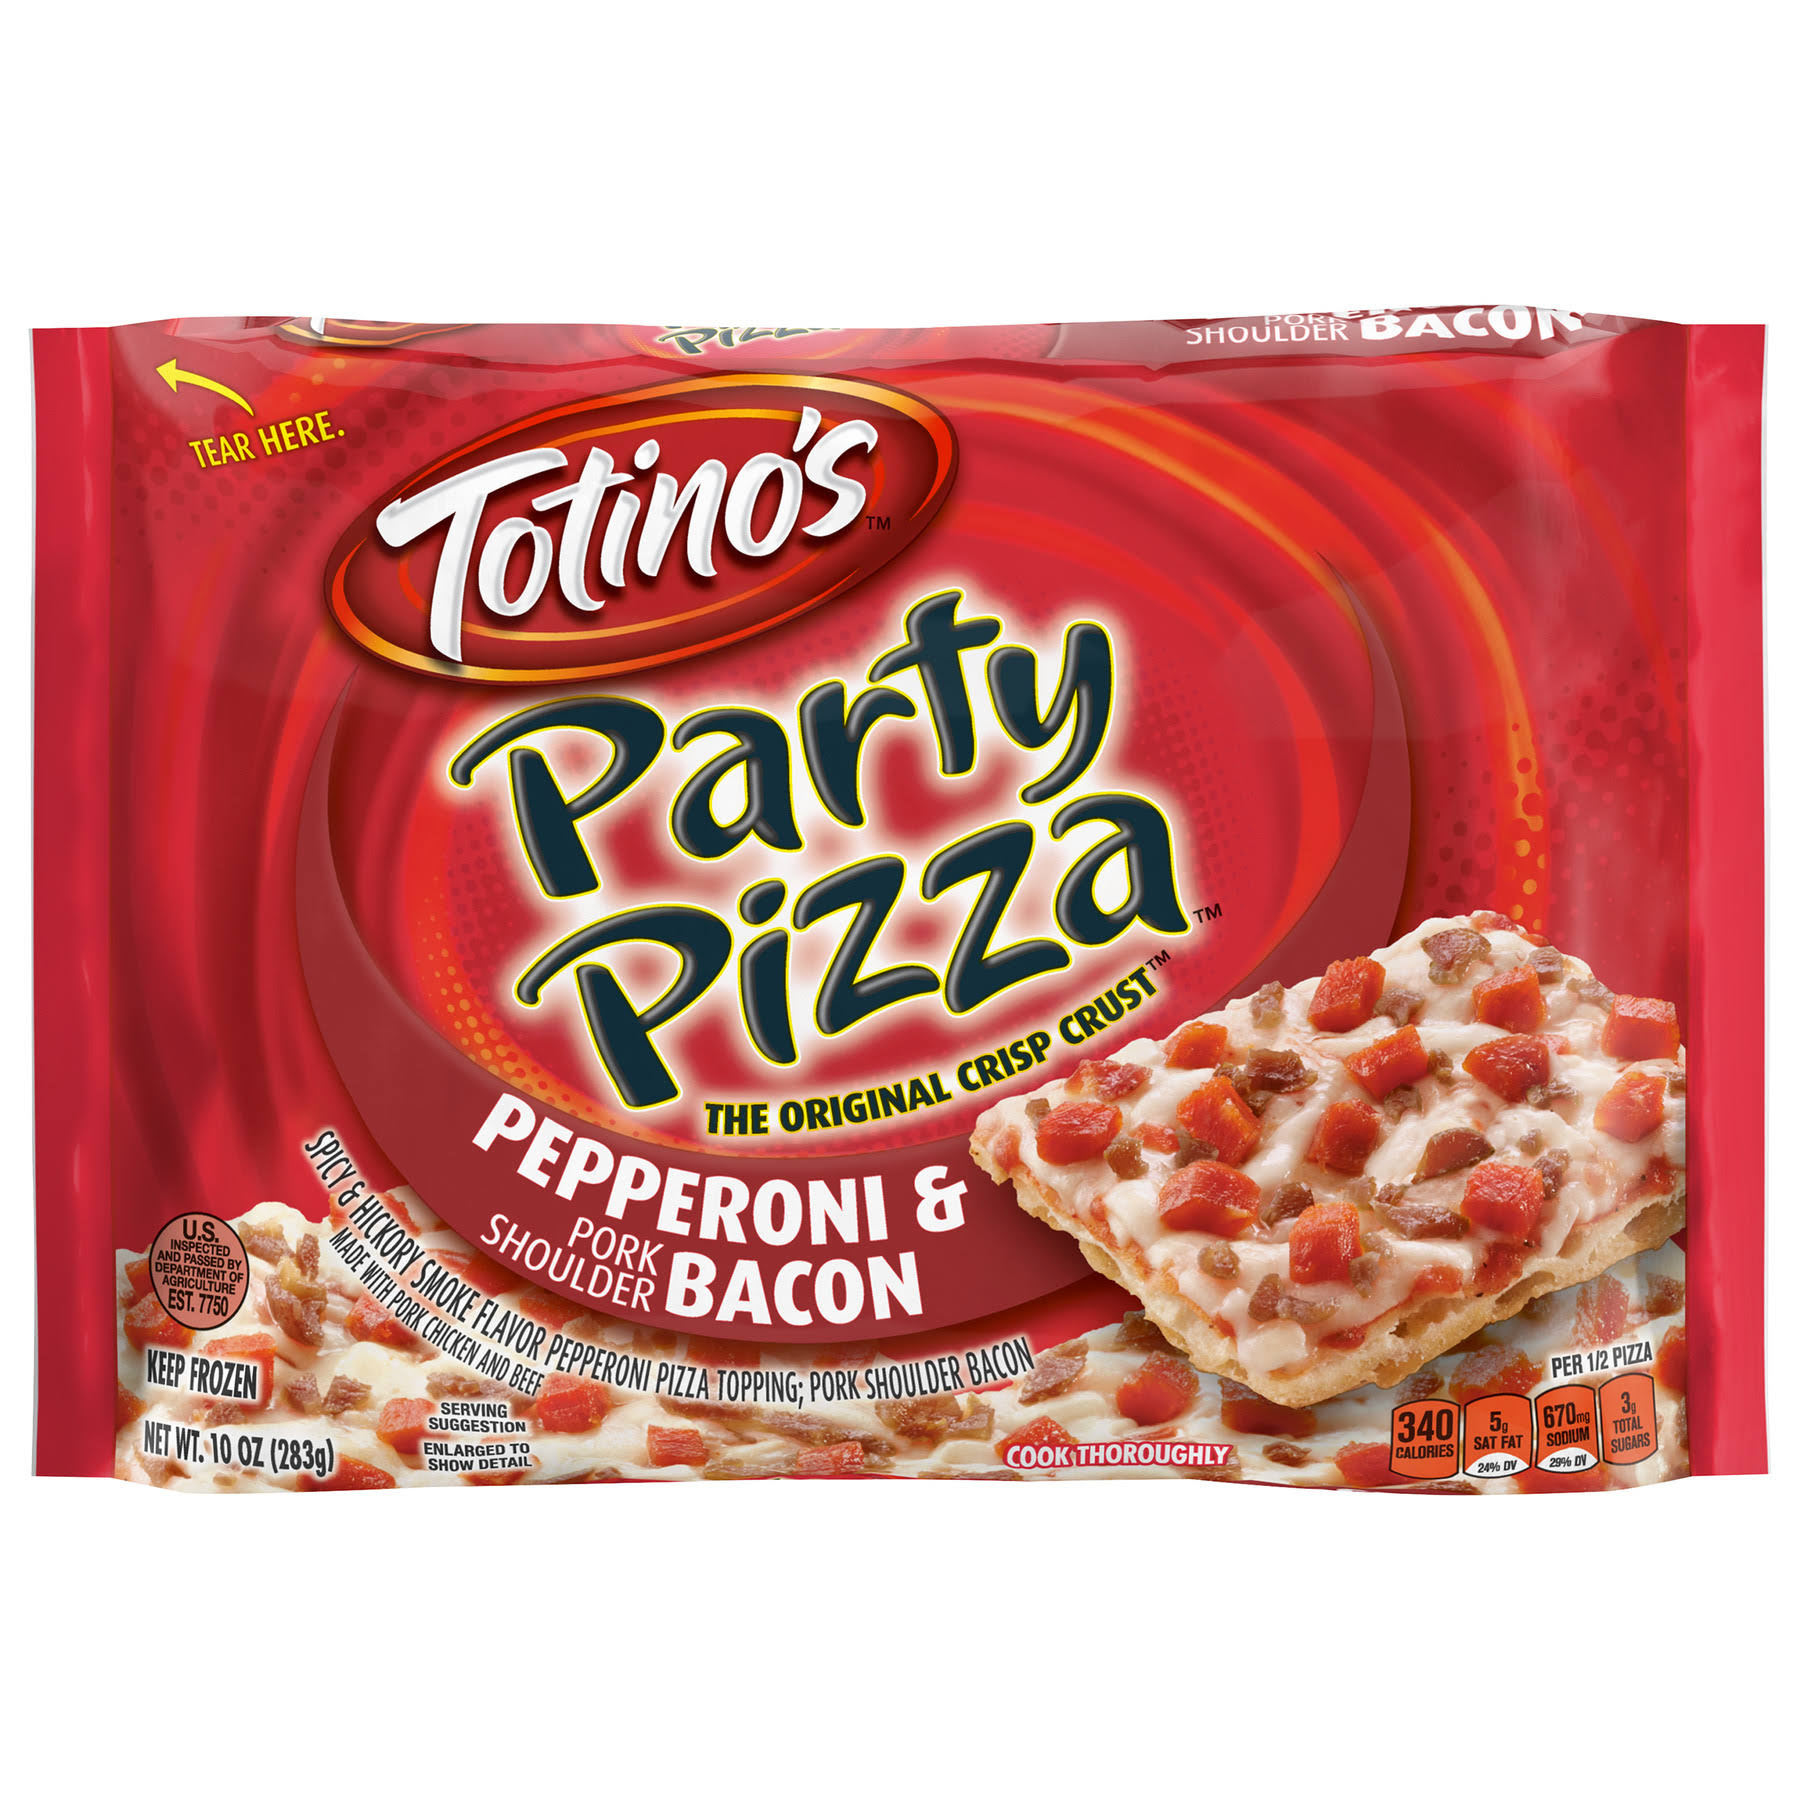 Totino's Party Pizza - Bacon and Pepperoni, 10oz